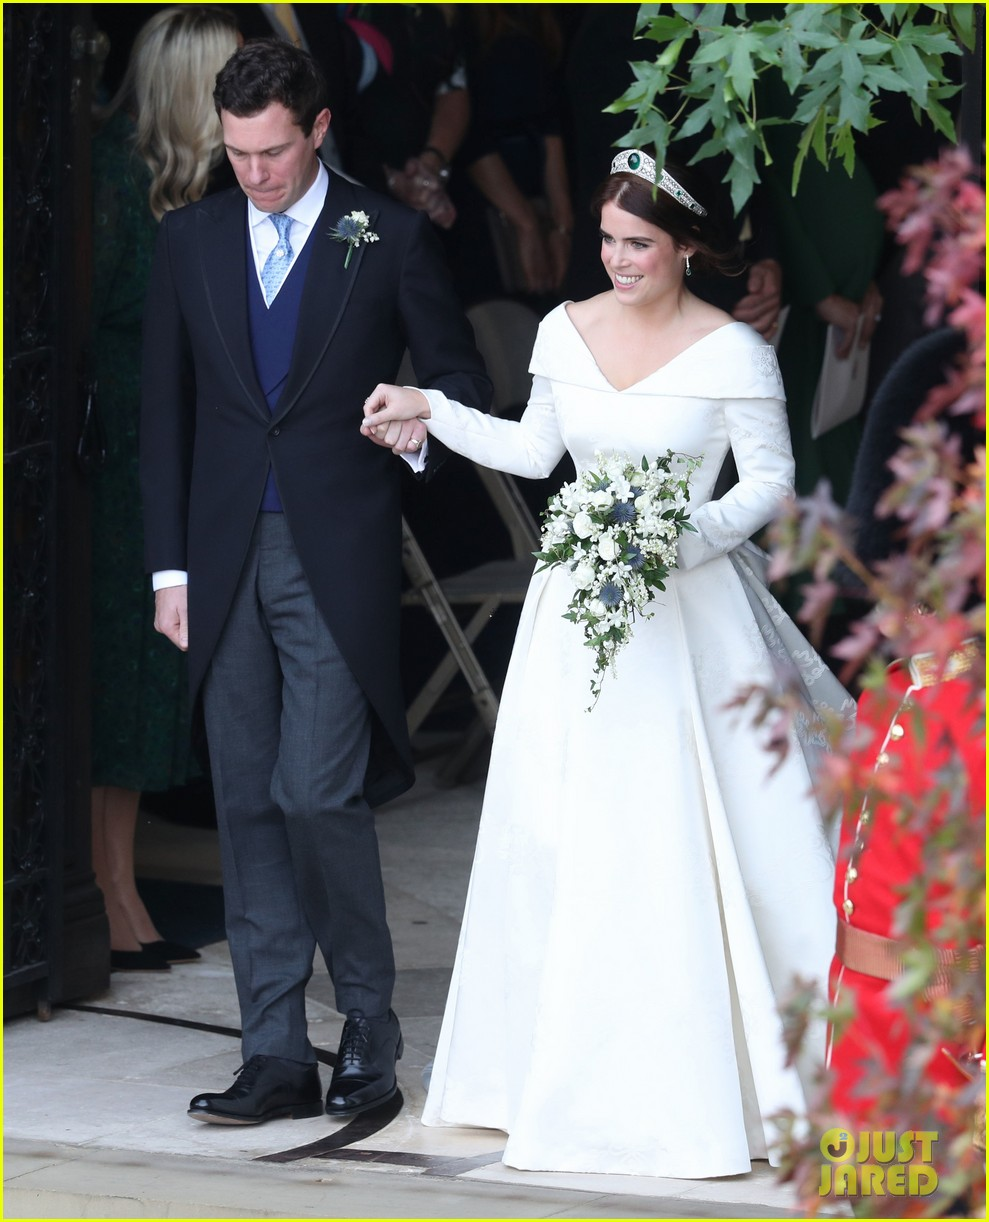 Weddings Pictures Gallery: Princess Eugenie & Jack Brooksbank Are Married